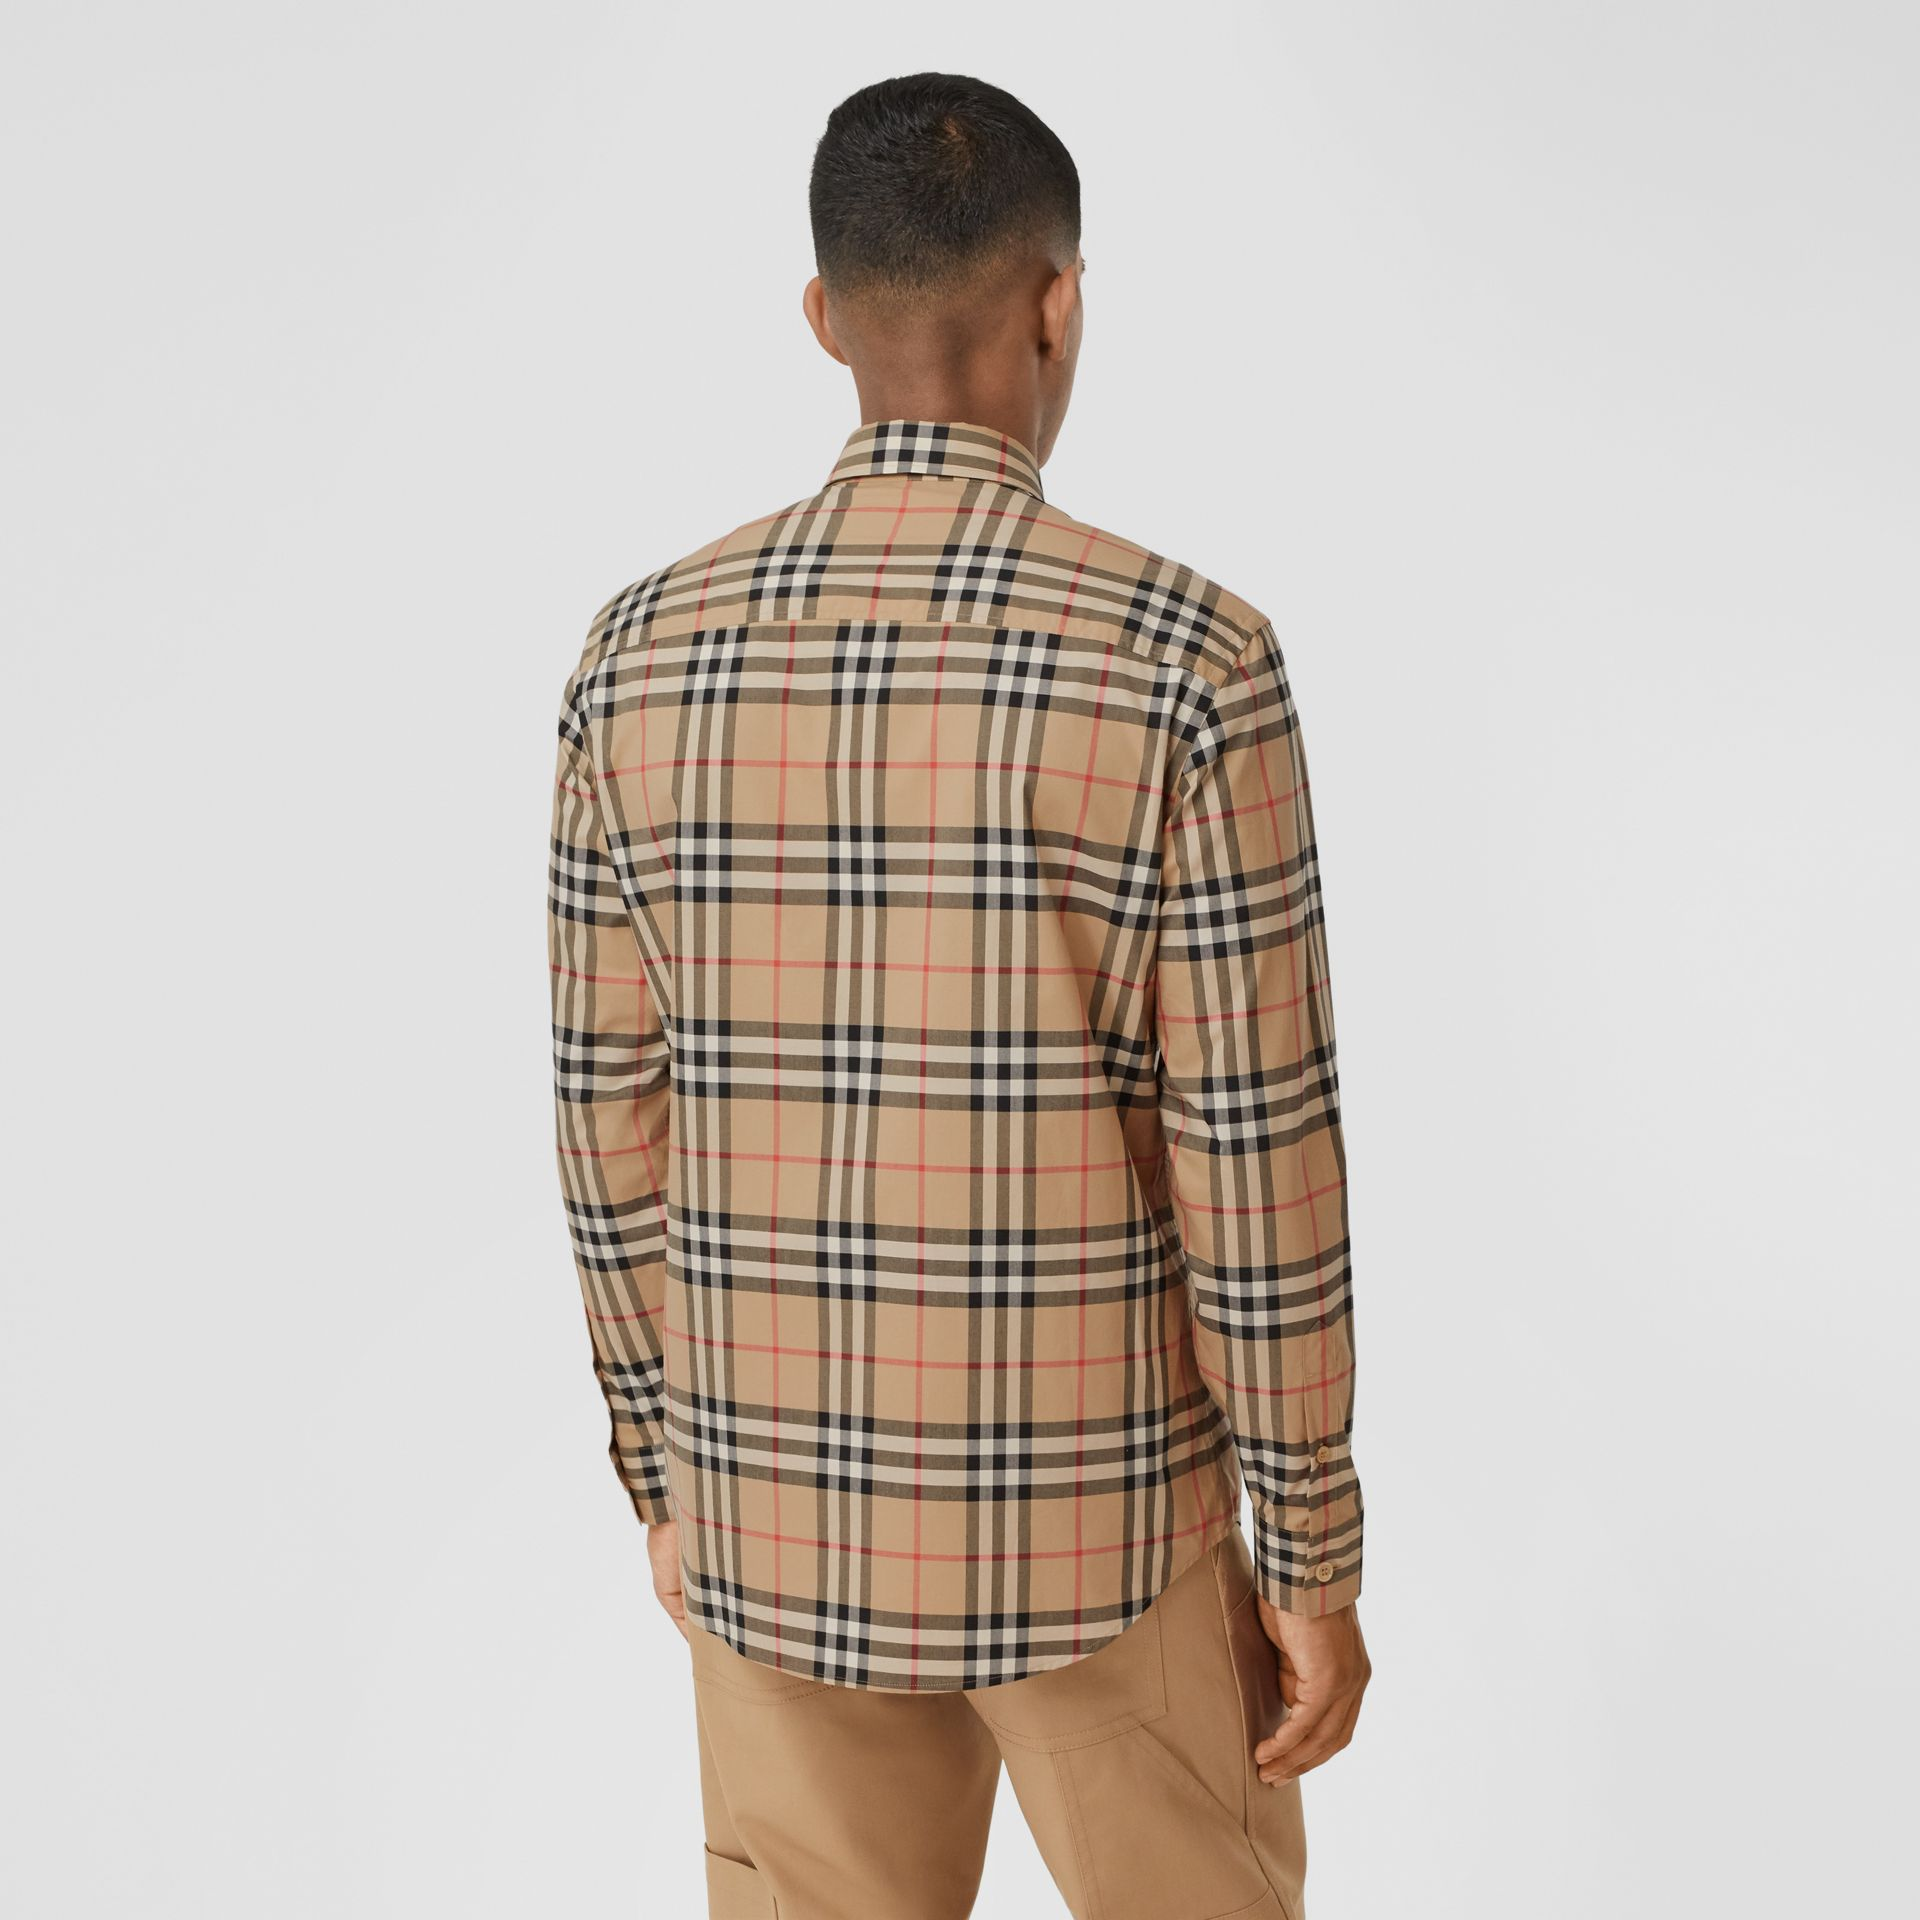 Logo Print Vintage Check Cotton Poplin Shirt in Archive Beige - Men | Burberry - gallery image 2